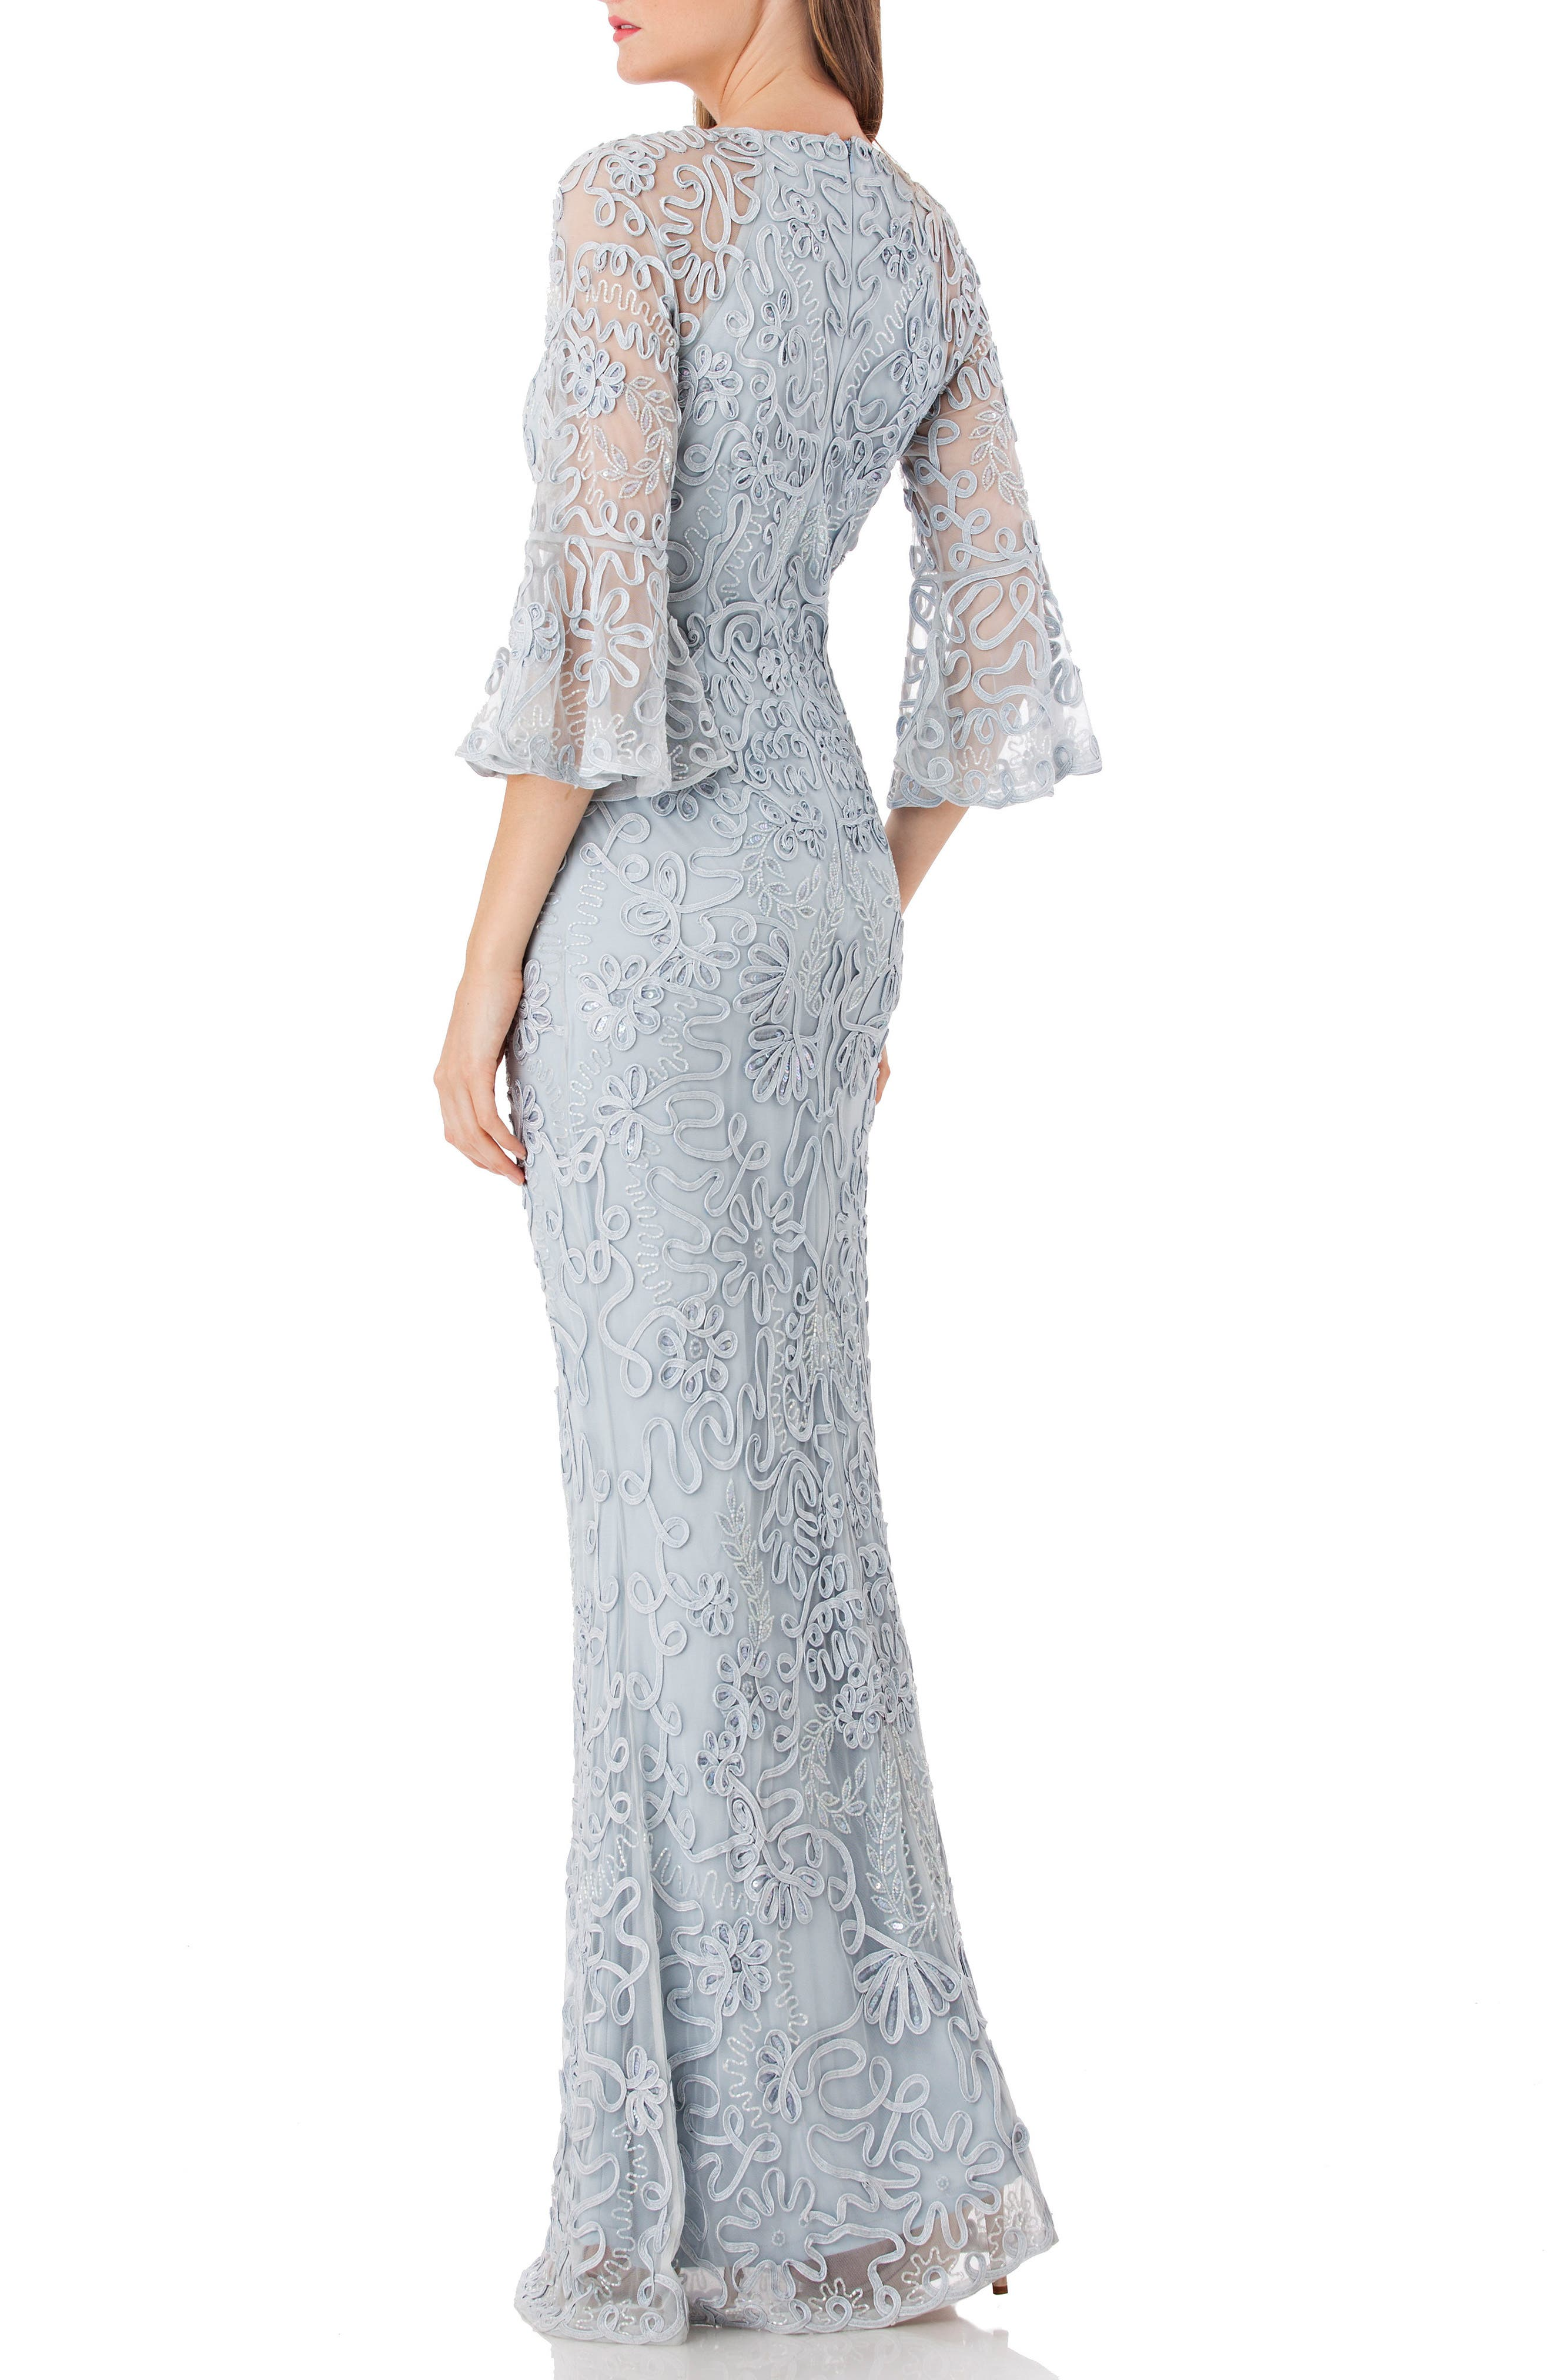 JS COLLECTIONS, Soutache Embroidered Trumpet Gown, Alternate thumbnail 2, color, 415